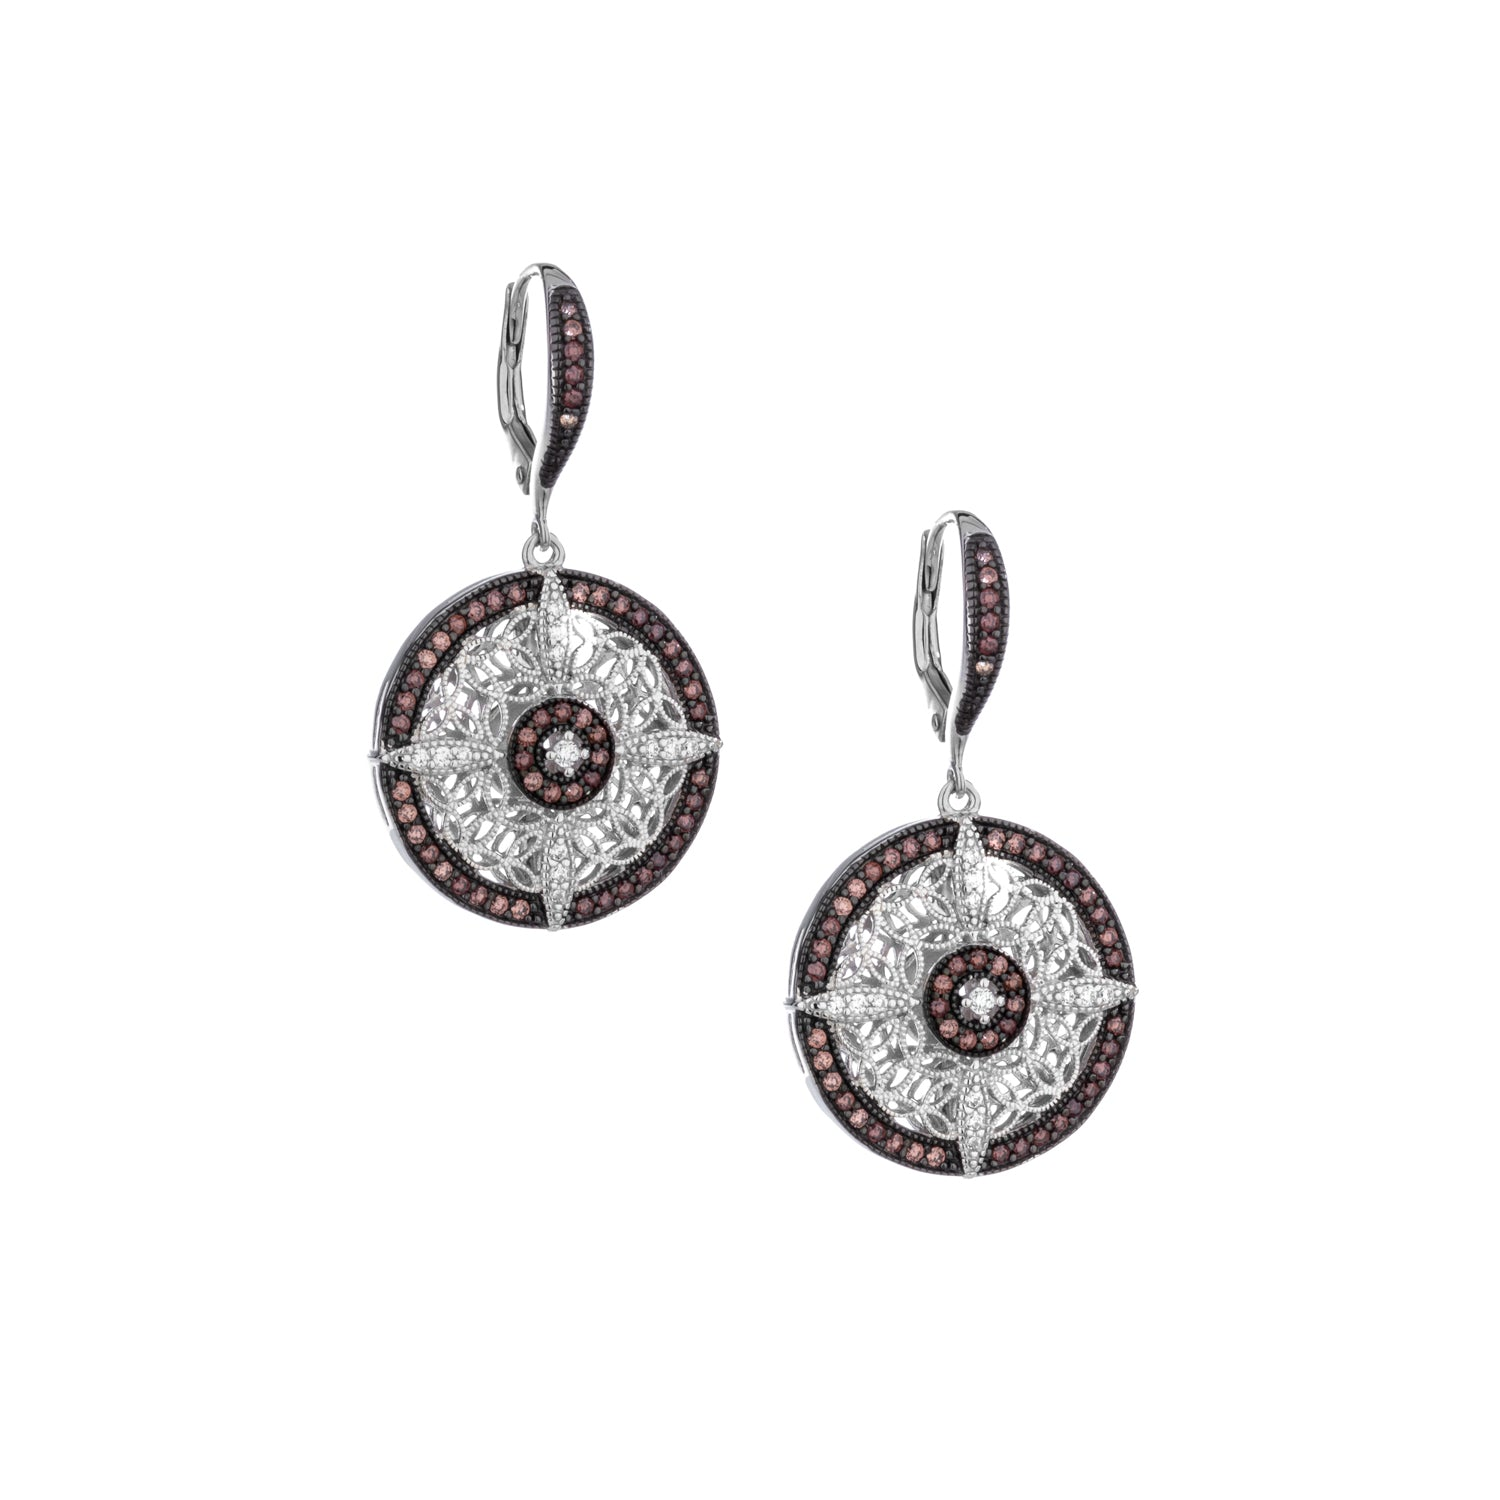 Earrings Rhodium CZ Night & Day Round Leverback Earrings from welch and company jewelers near syracuse ny